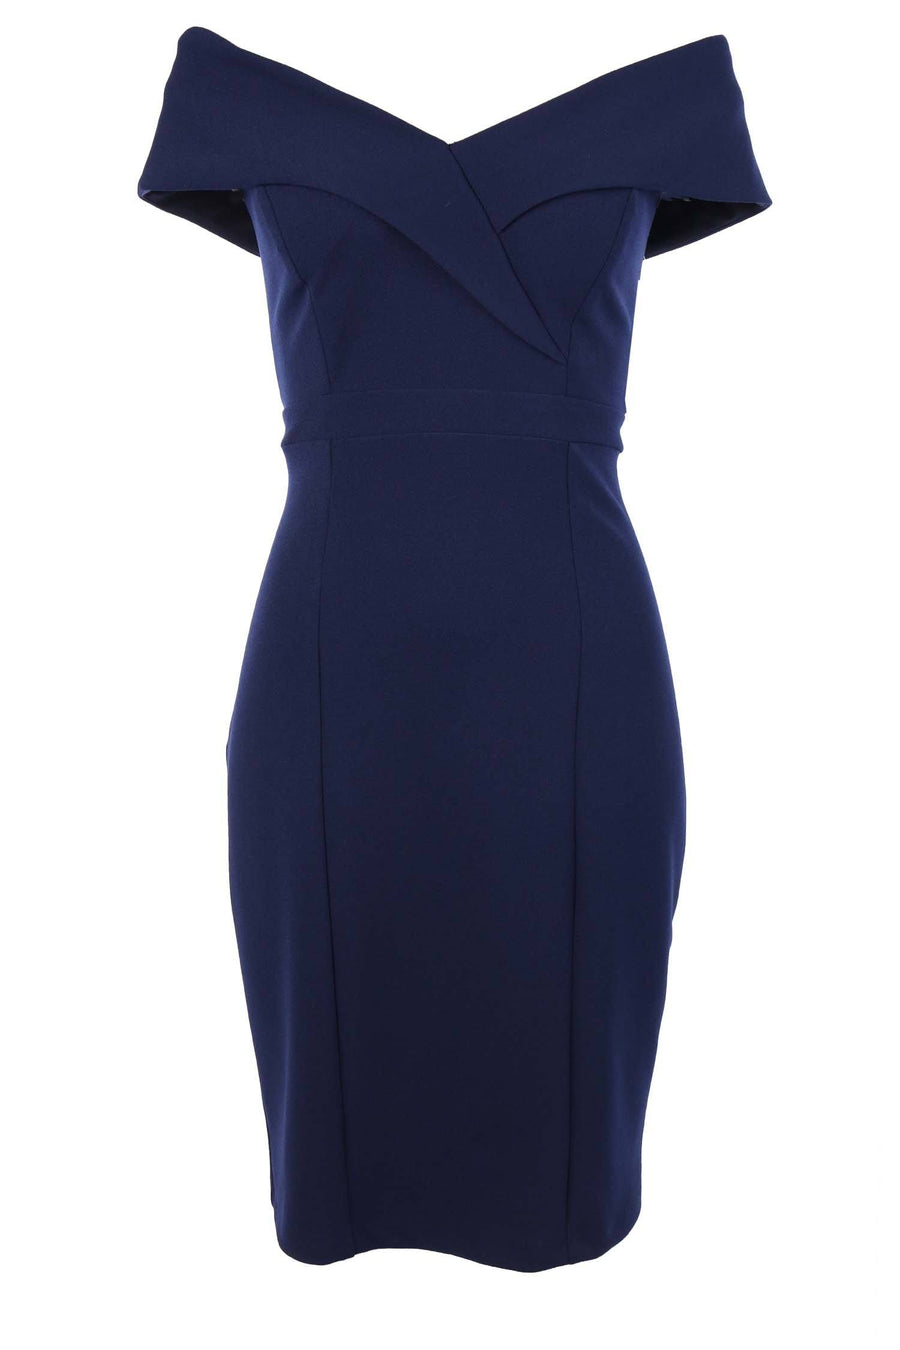 Paulini Short Crepe Dress in Navy